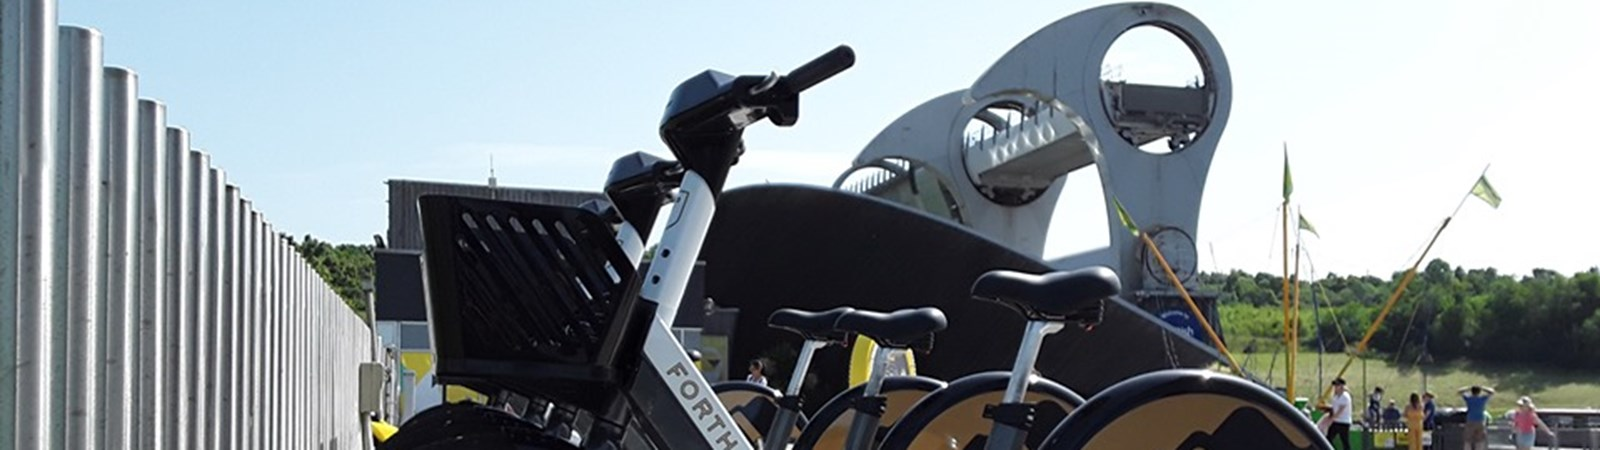 E bike hire Falkirk Wheel